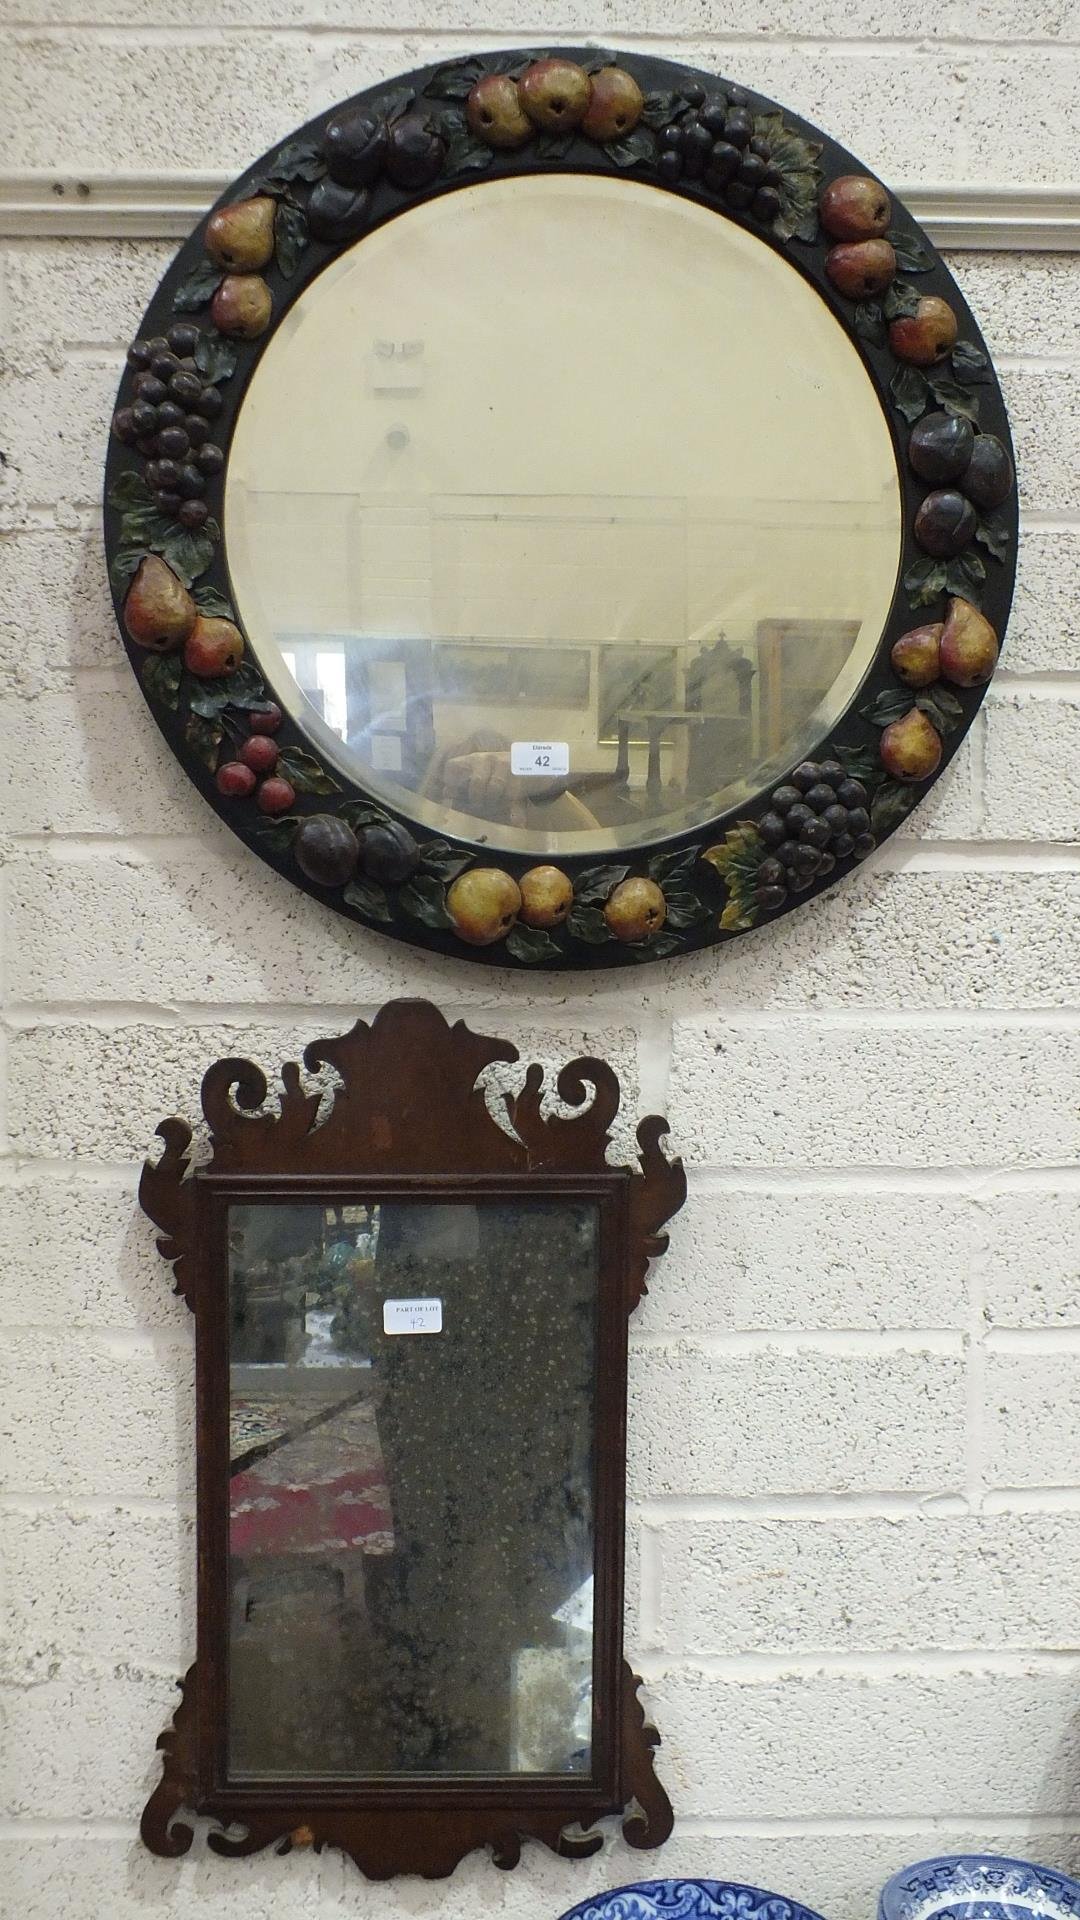 Lot 42 - A barbola work wall mirror, the circular plate within a frame applied with fruit, and three other